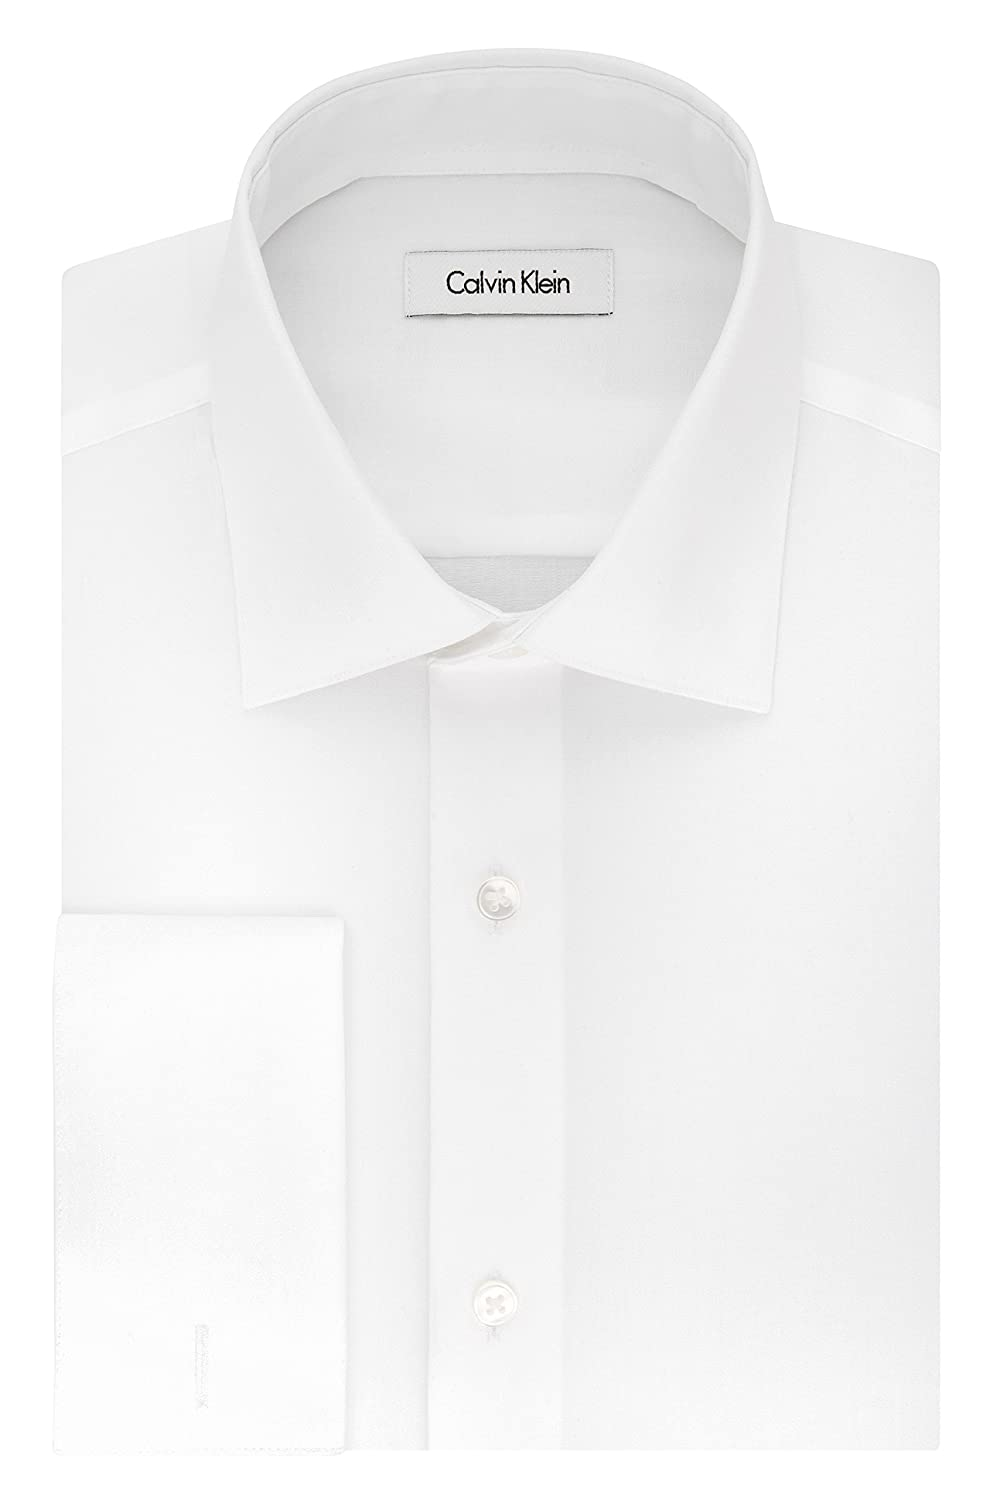 Calvin Klein Mens Dress Shirts French Cuff Shirts For Men Non Iron